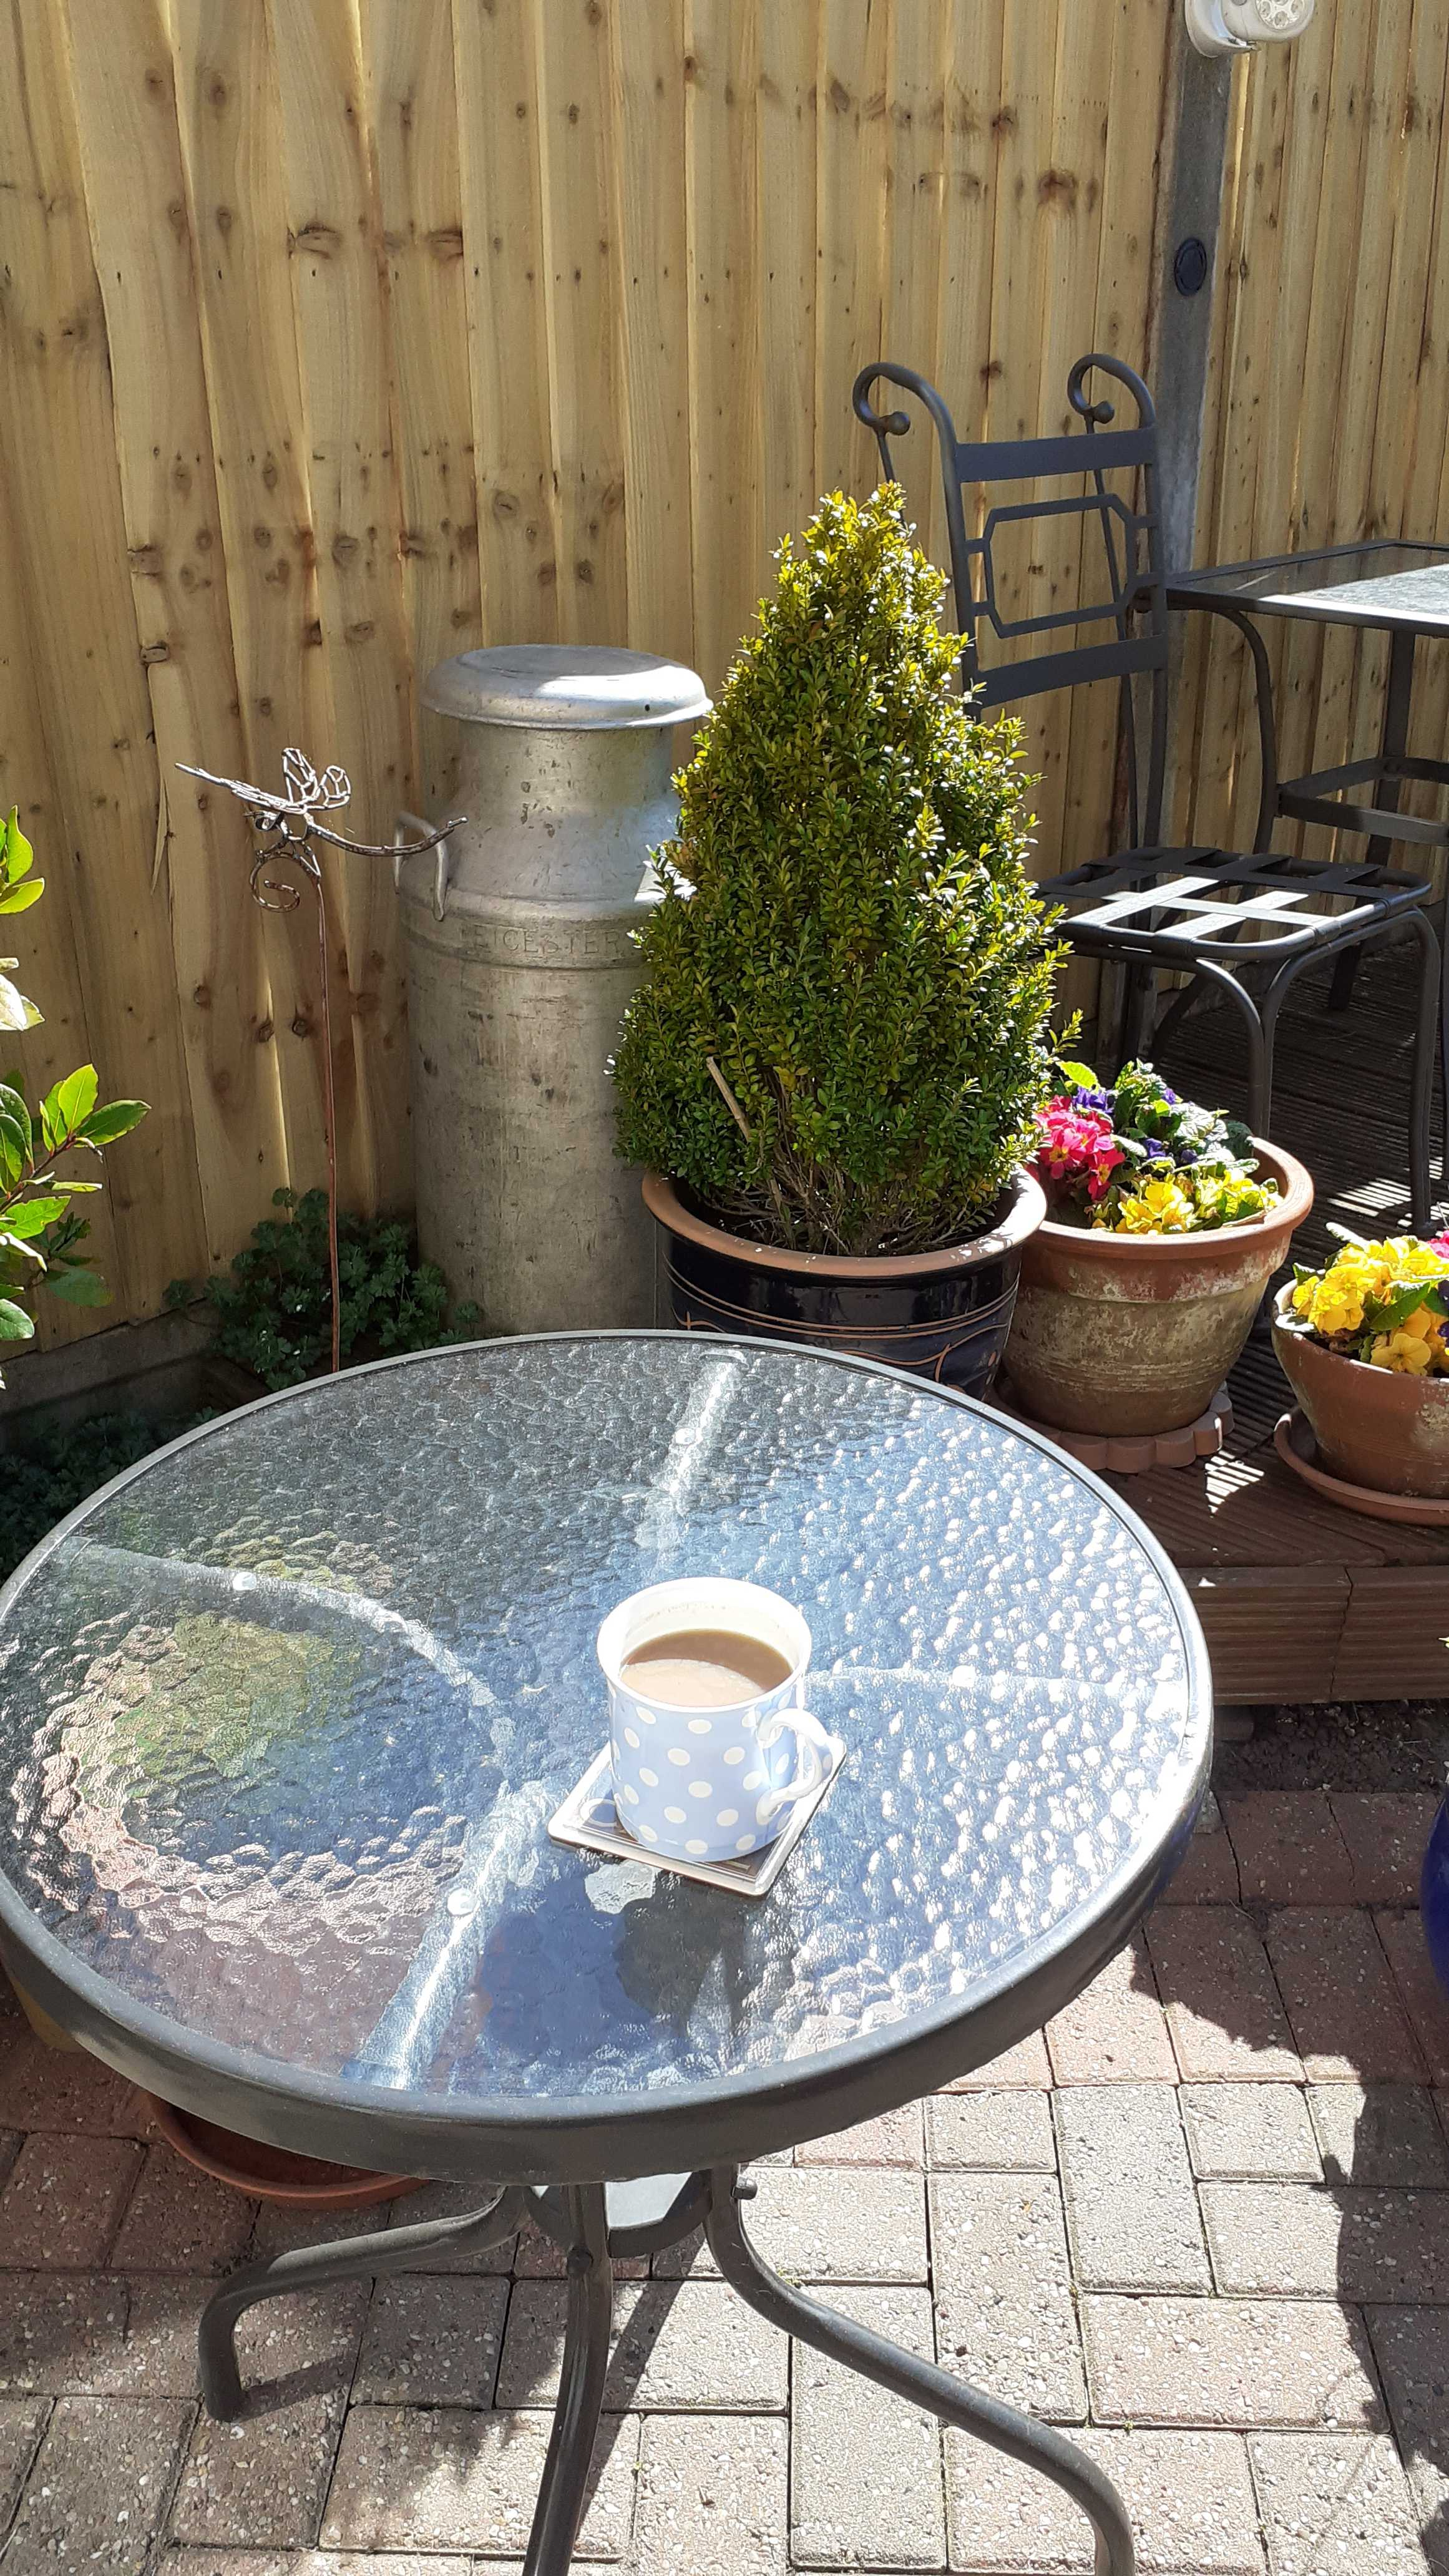 A small round garden table with a cuppa on it, in a garden setting.